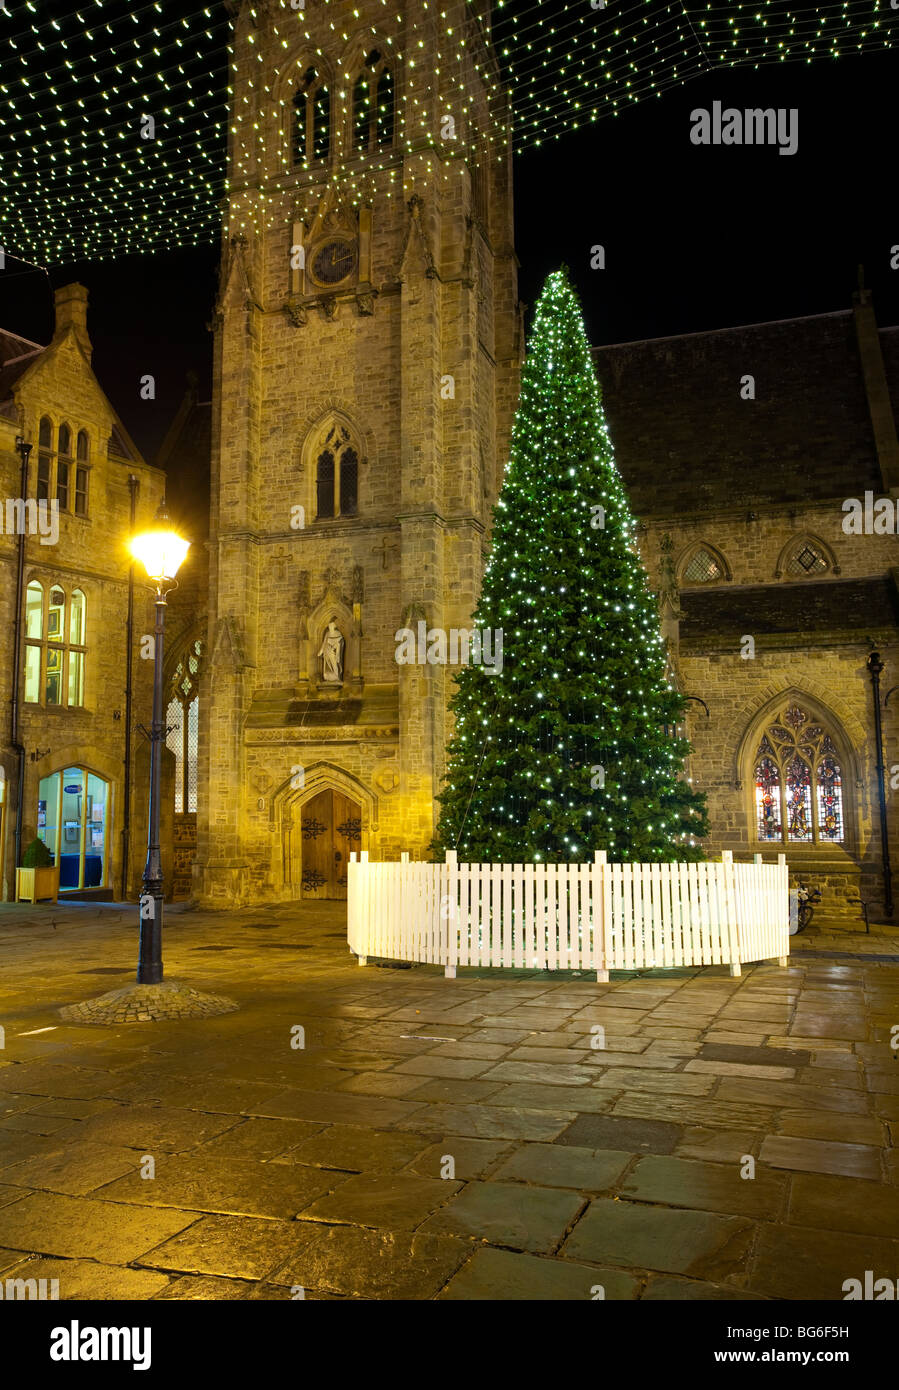 England County Durham Durham City Christmas Tree In The Market